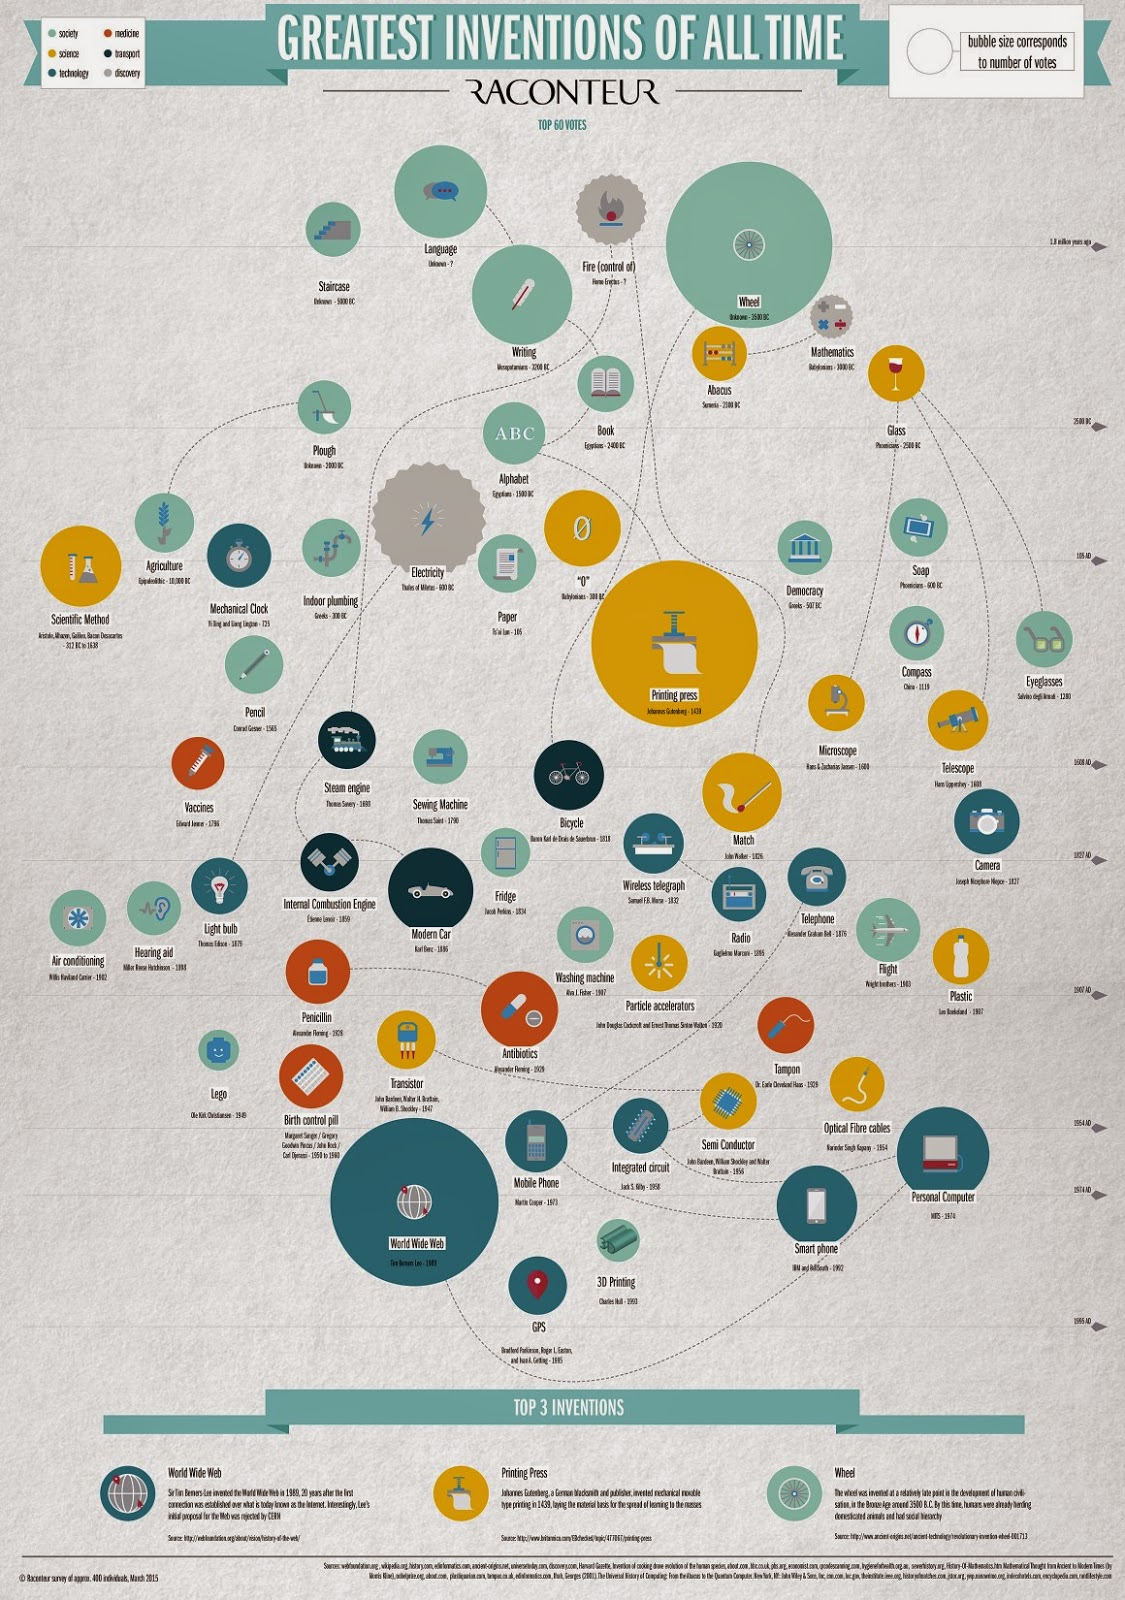 http://raconteur.net/infographics/the-greatest-inventions-of-all-time